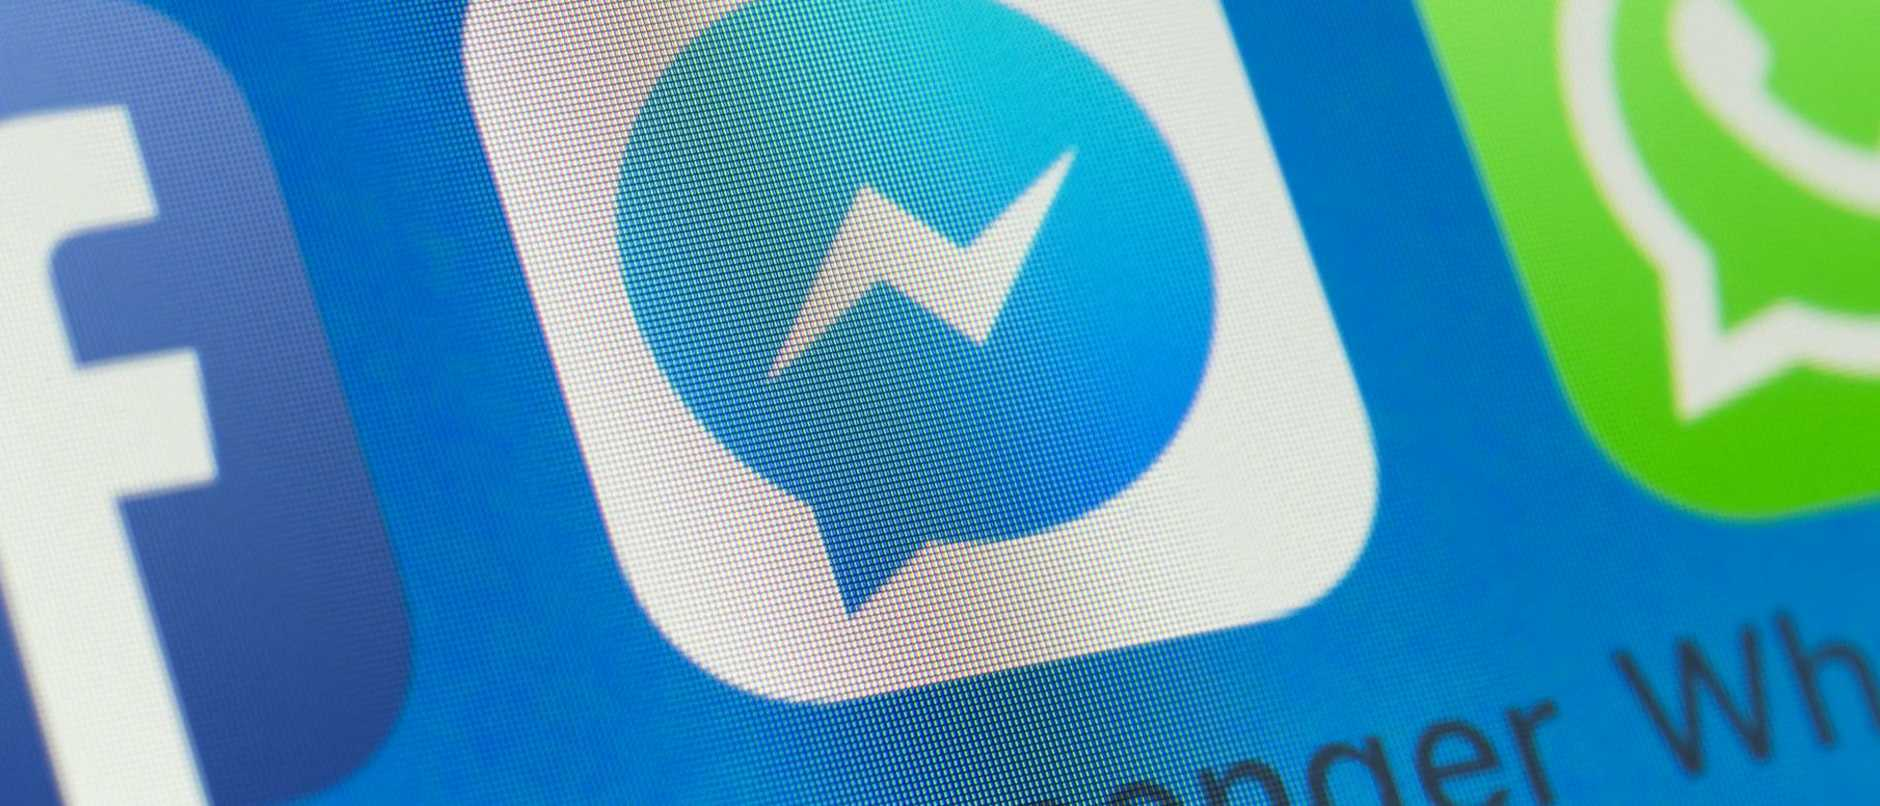 Messenger, Whatsapp, Facebook and other cellphone Apps on iPhone screen